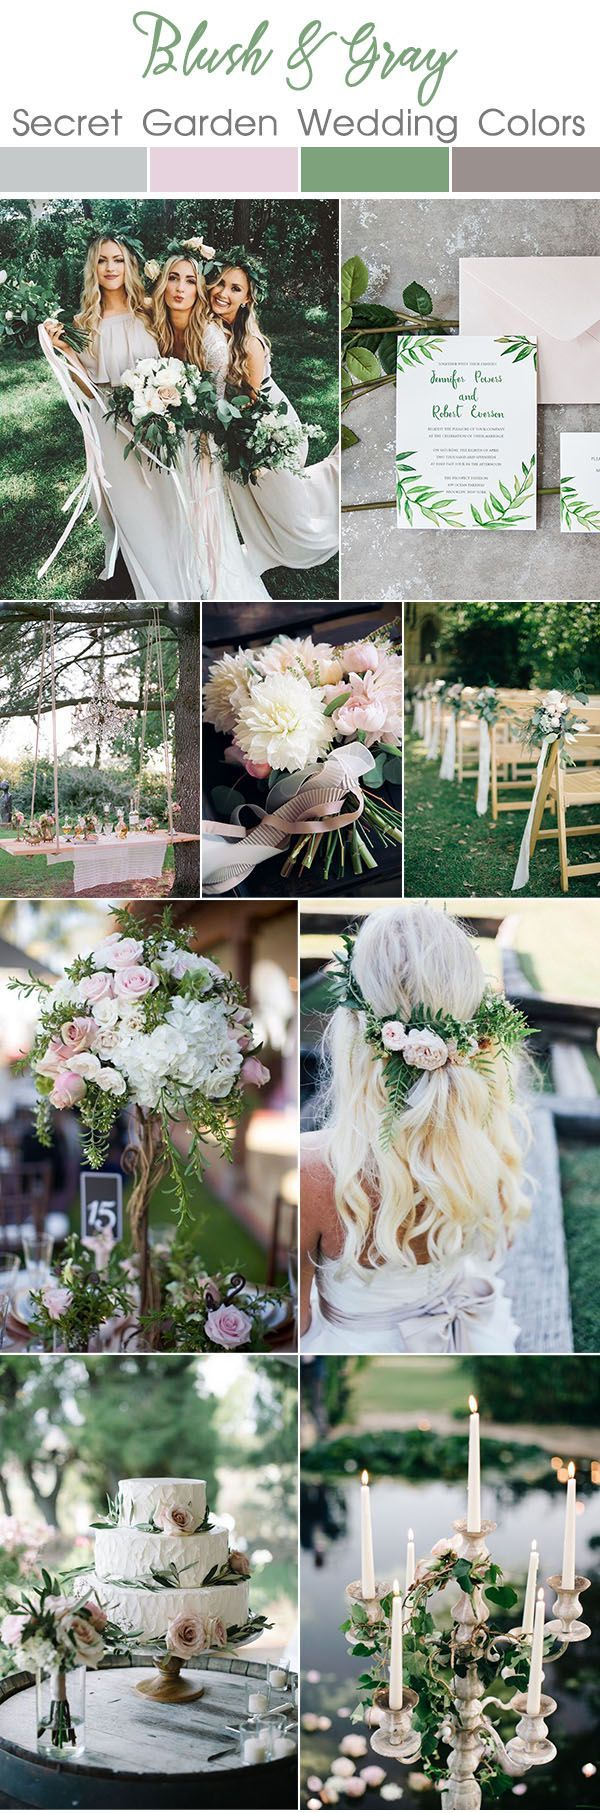 blush and gray spring and summer secret garden wedding theme ideas